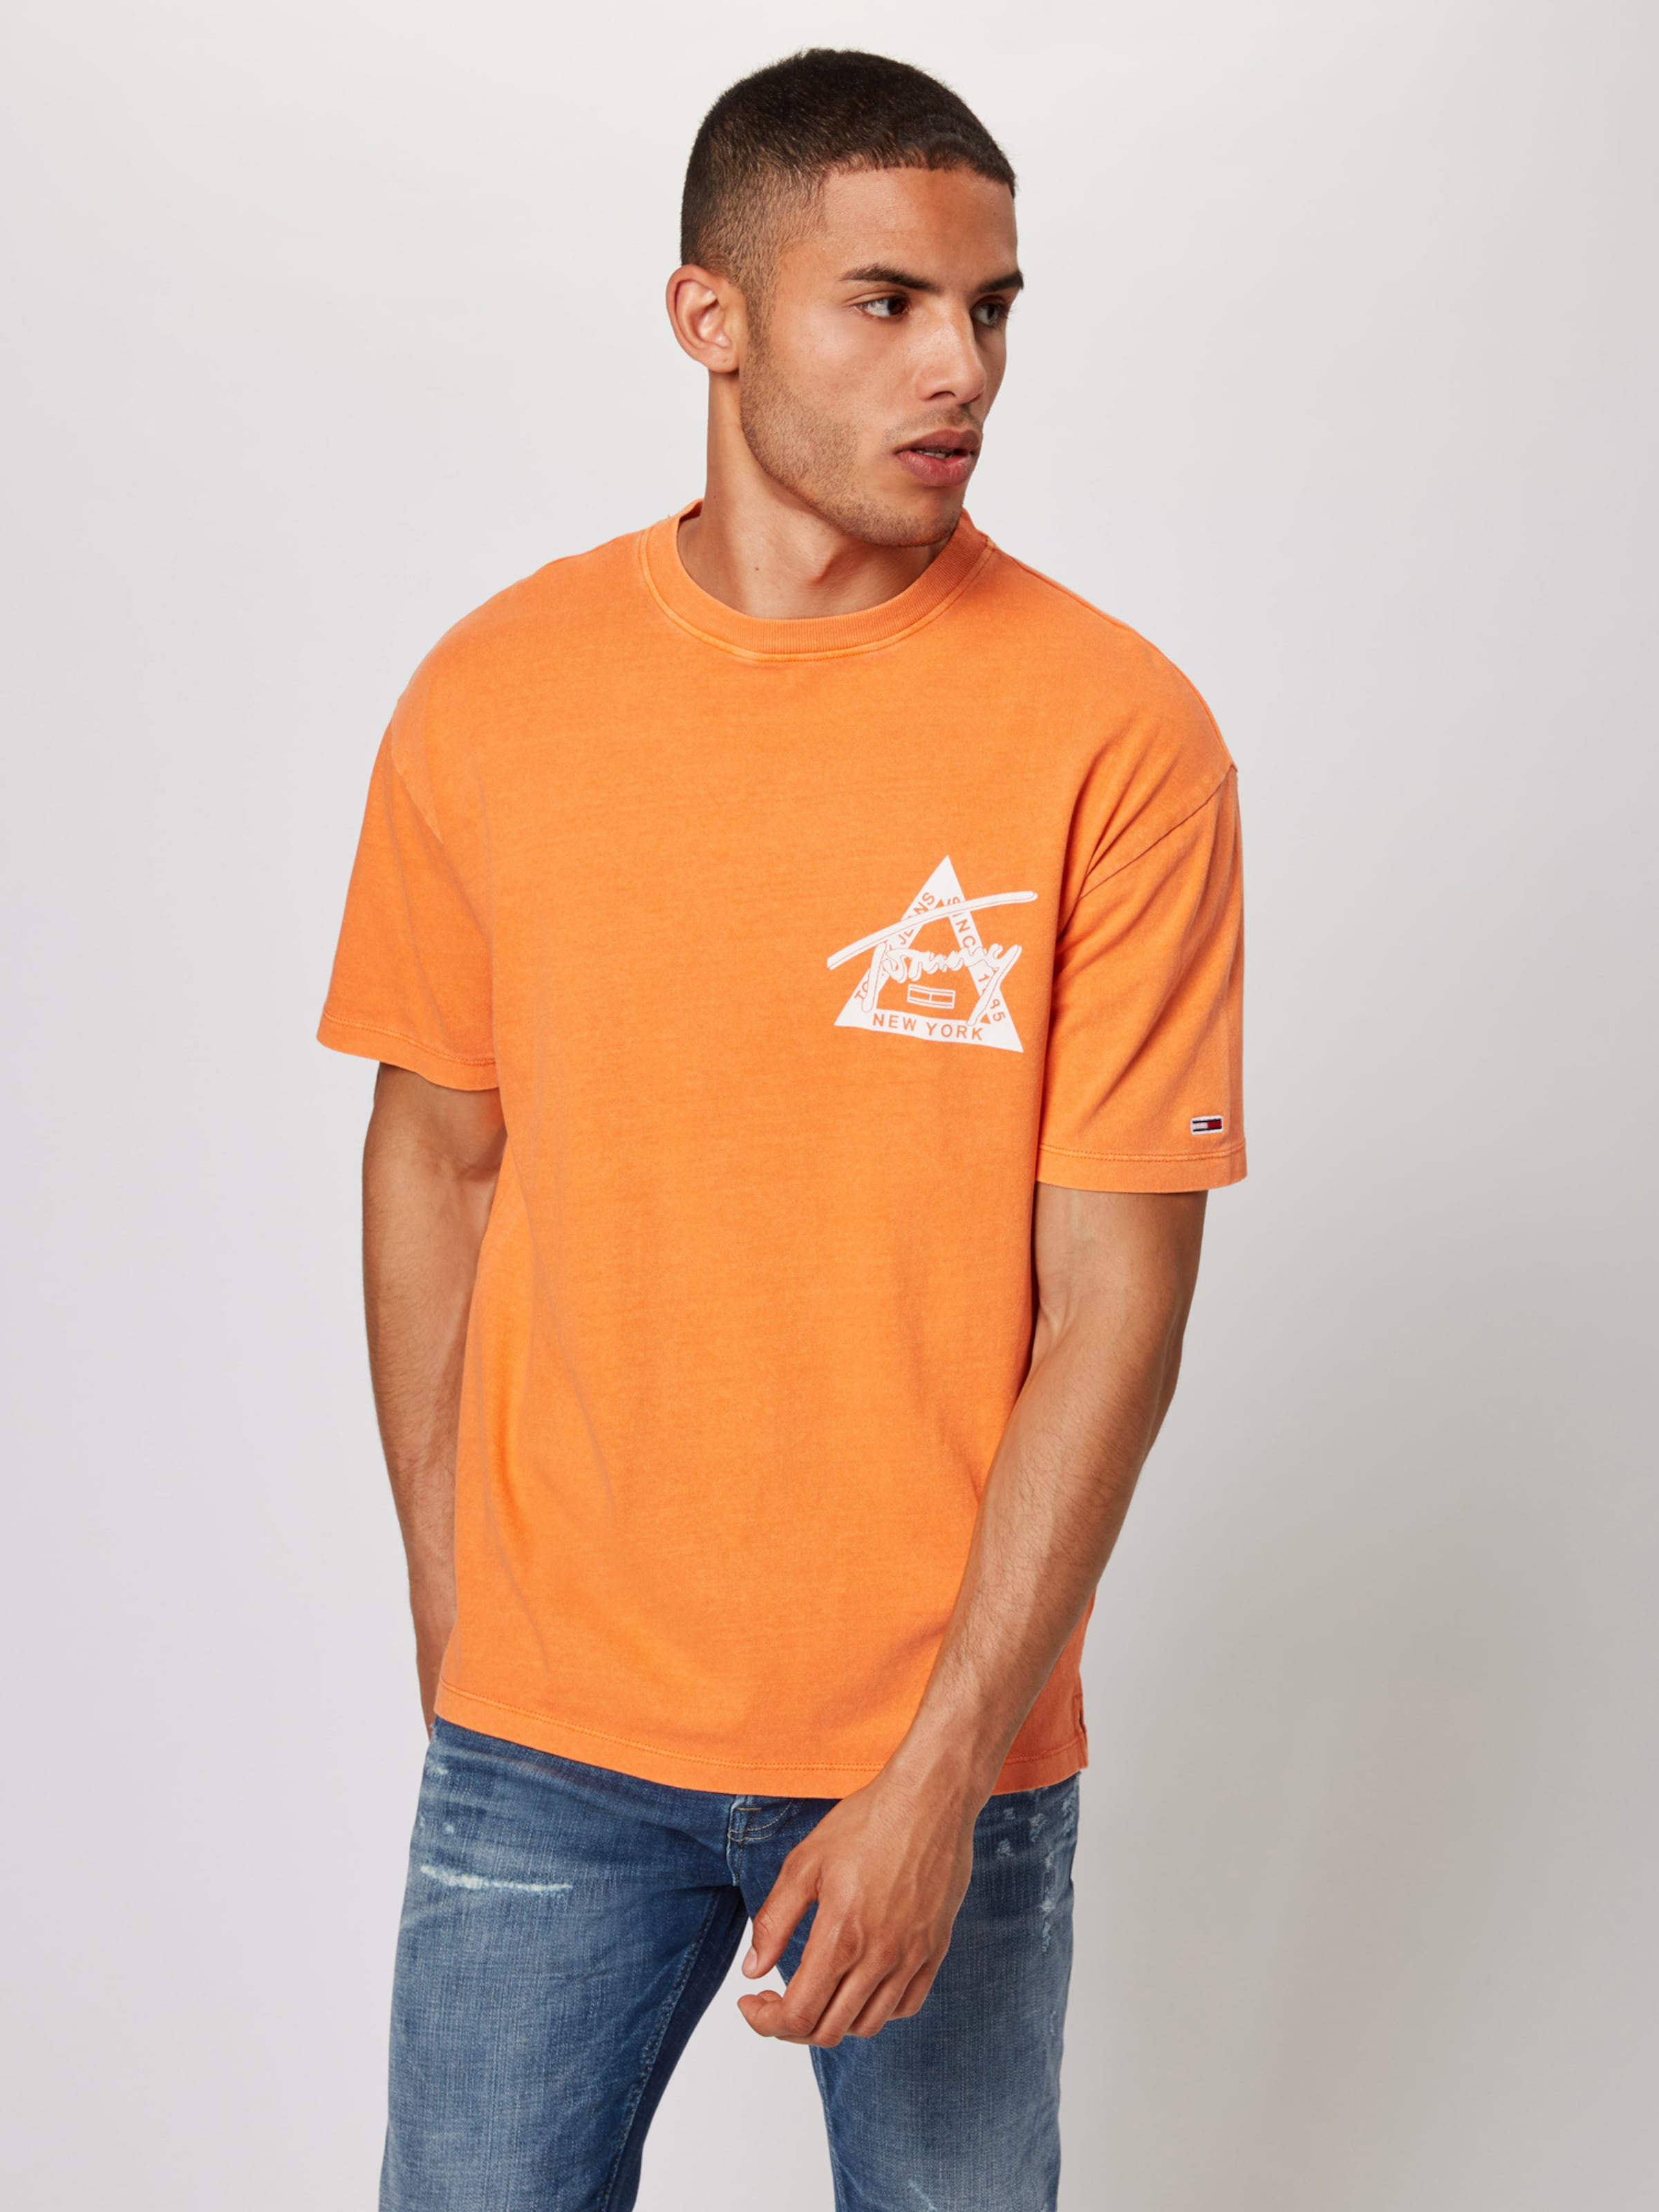 'washed In OrangeWeiß Graphic' Shirt Tommy Jeans LGSUqzVpMj